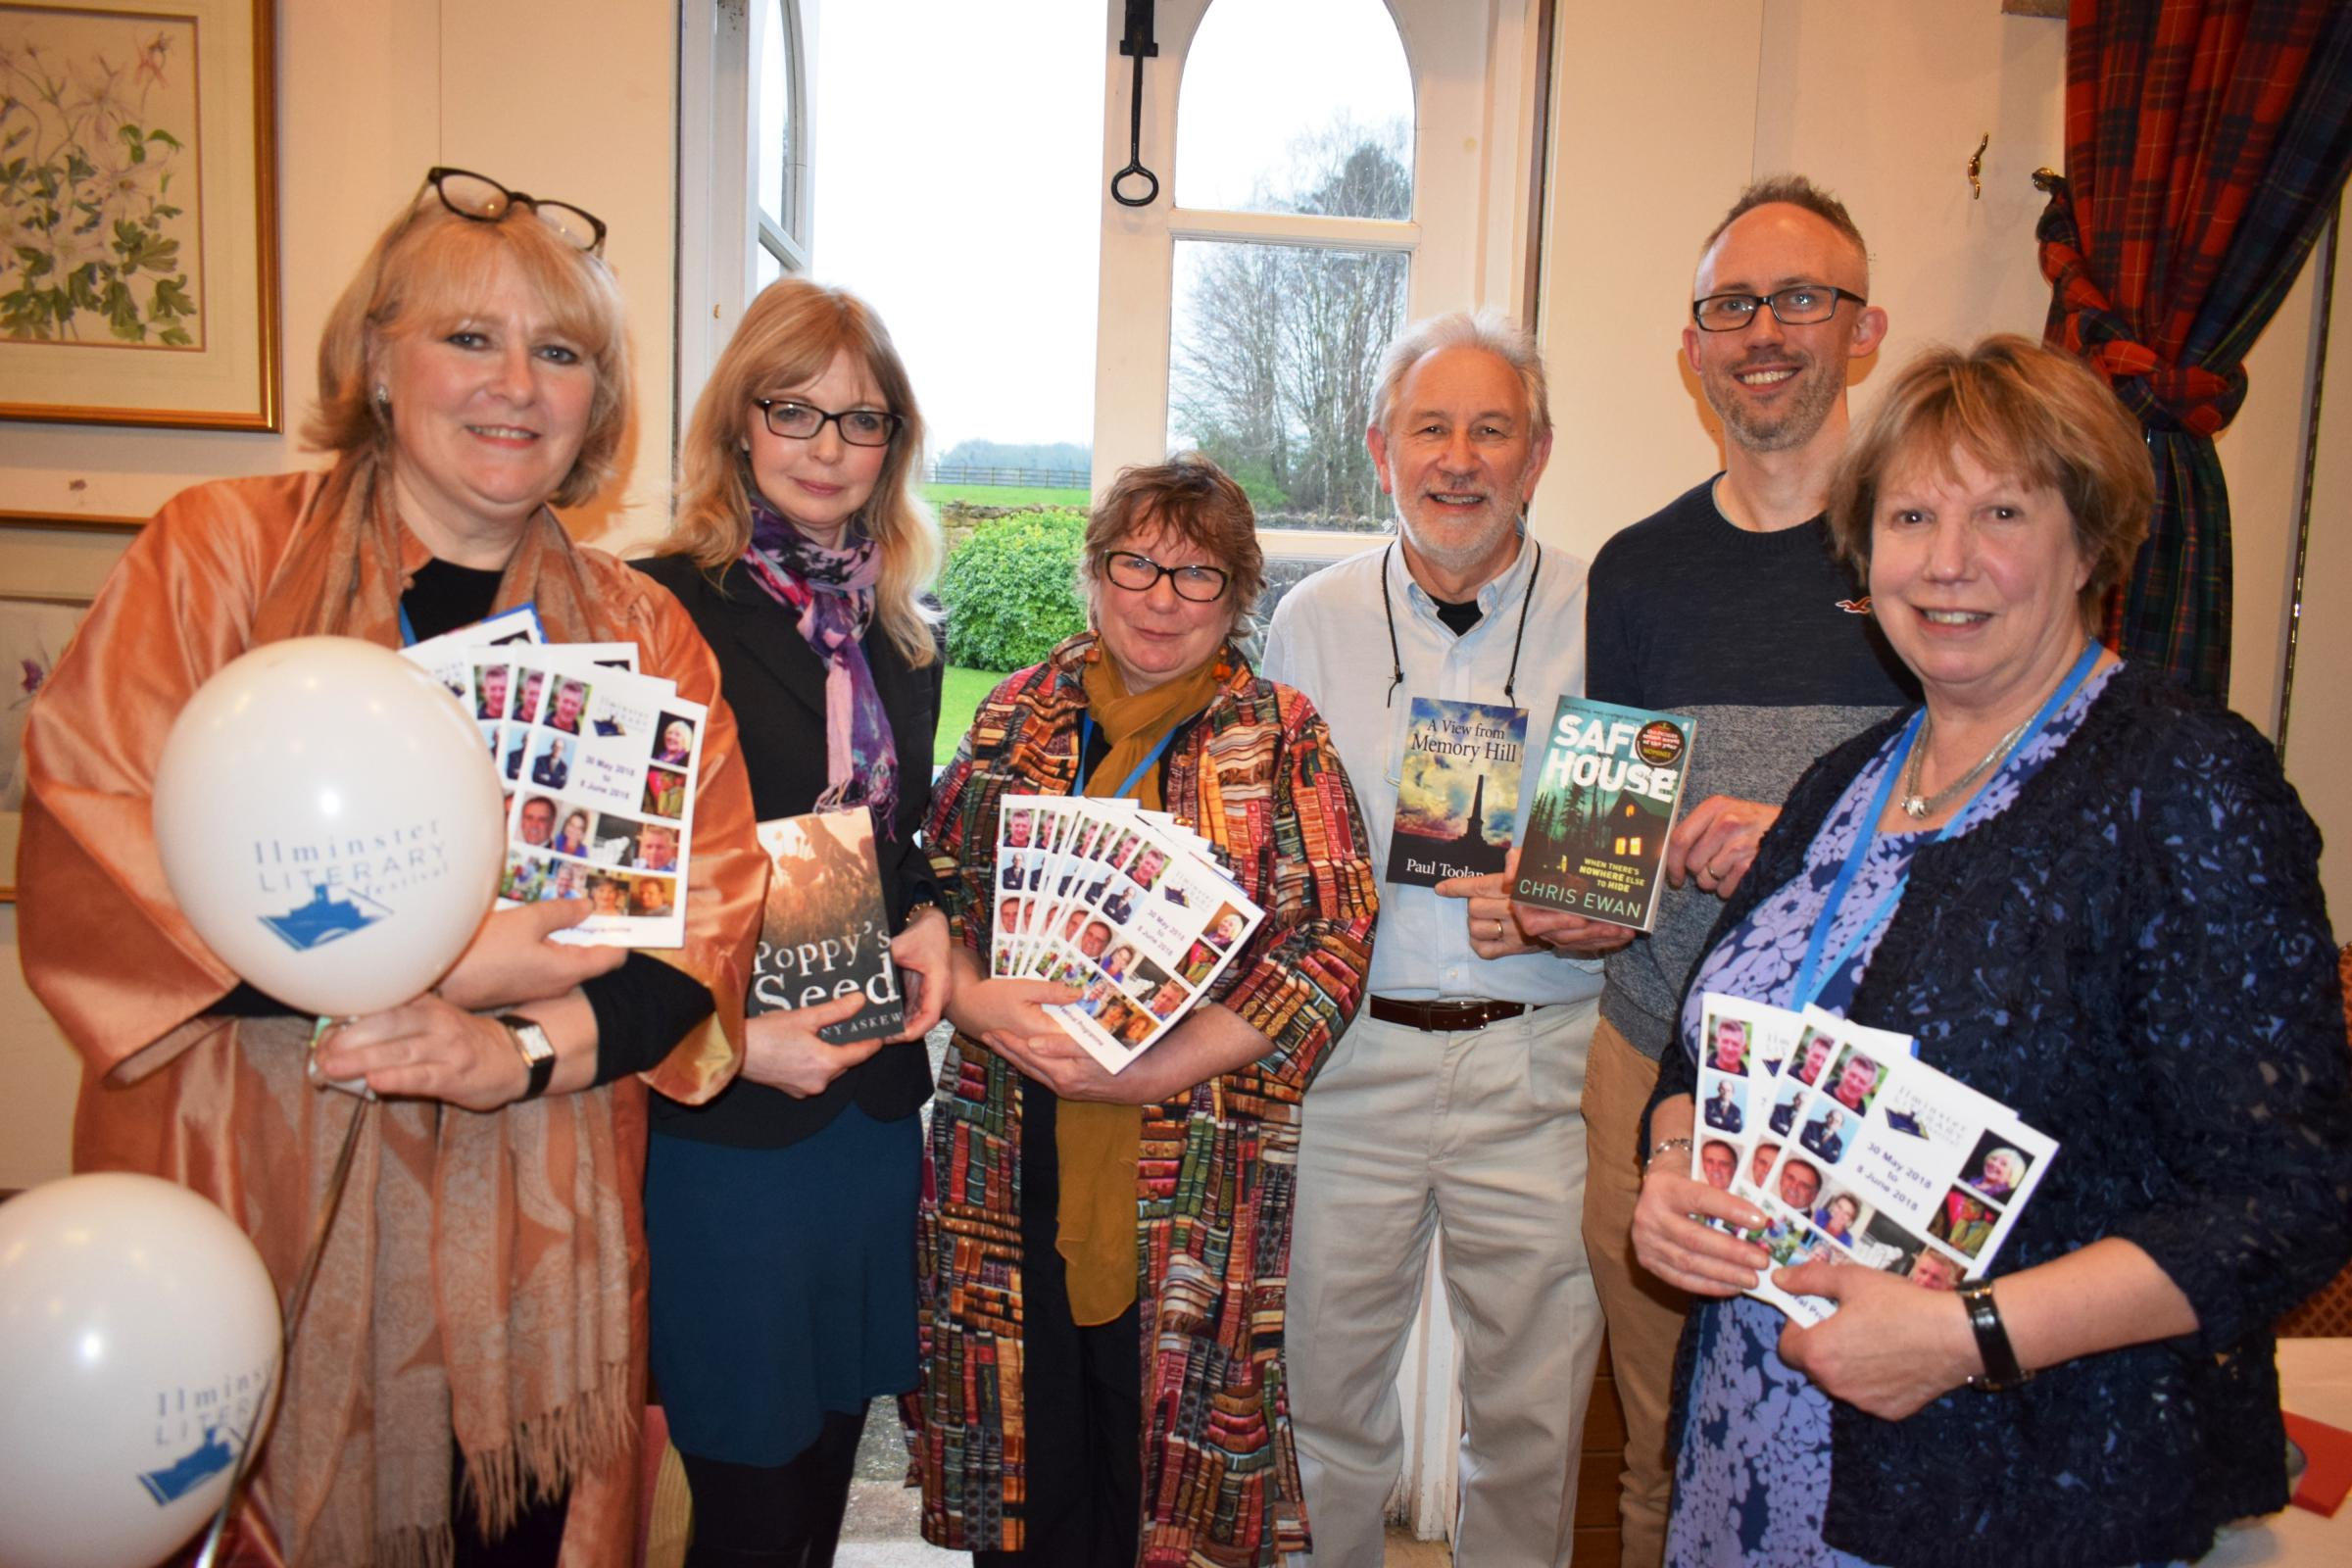 LAUNCH: Ilminster Literary Festival 2018 gets the civic seal of approval